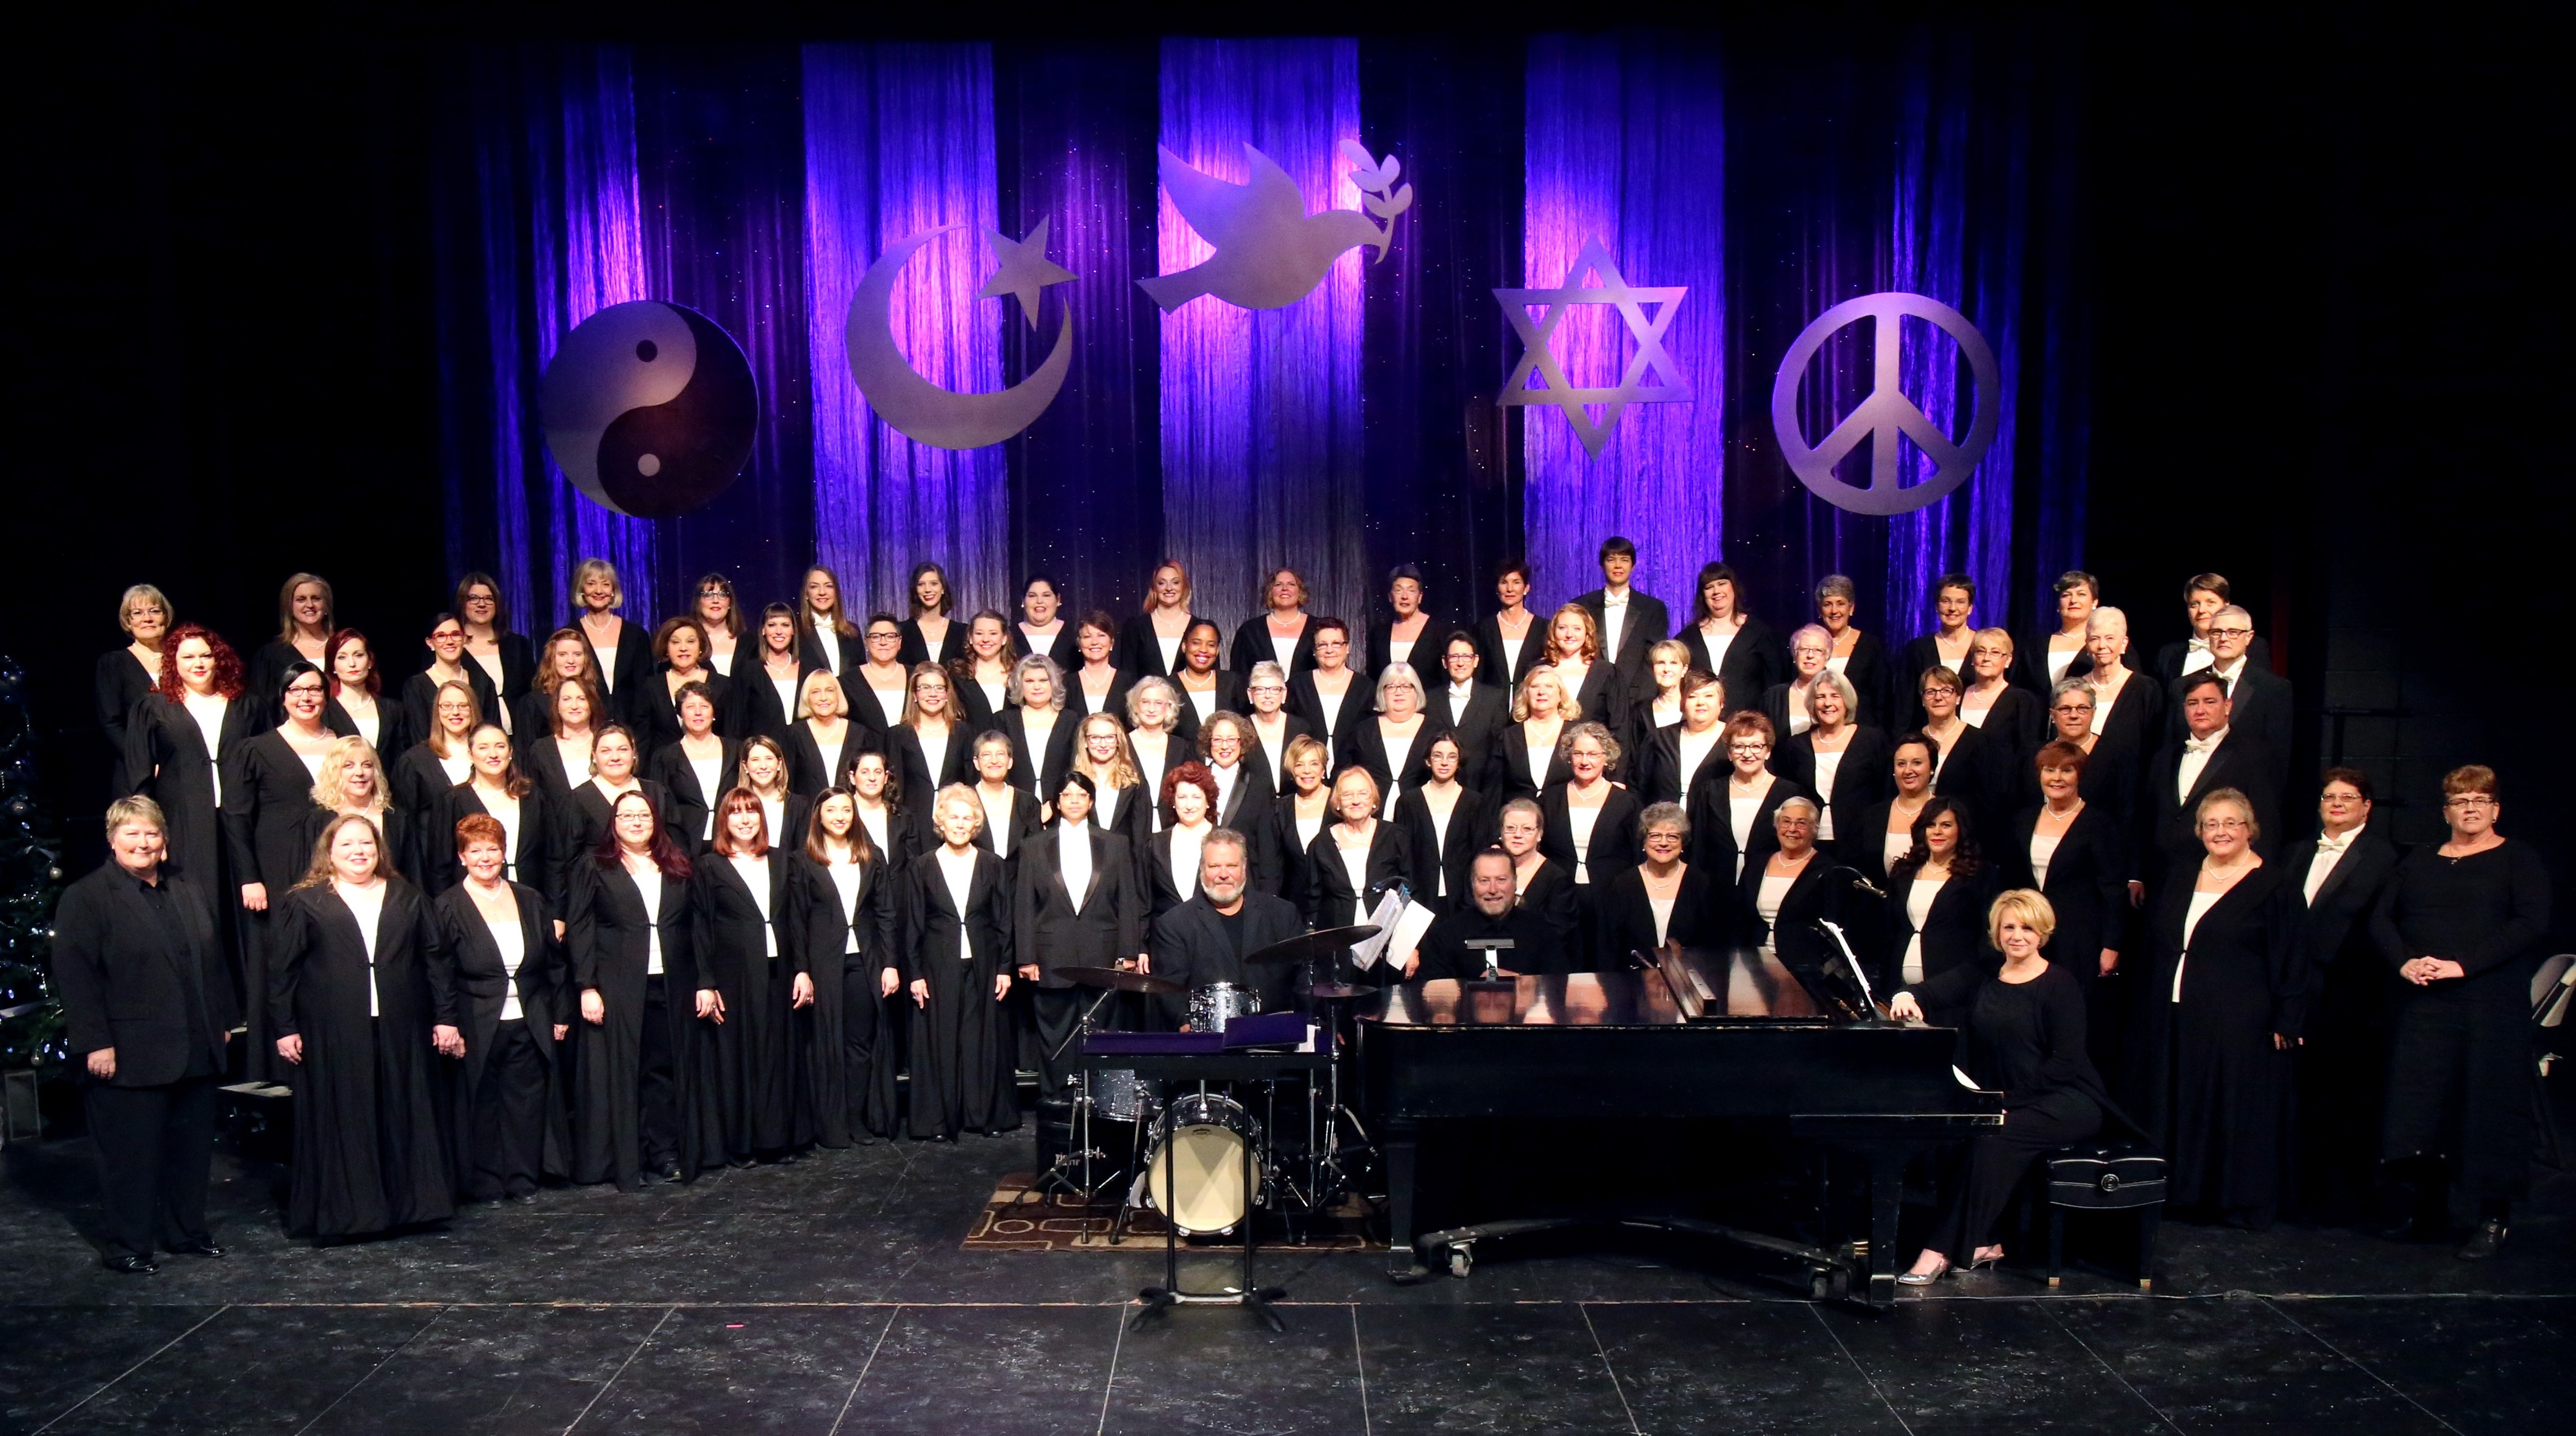 LIBERTY & MUSIC FOR ALL: Choral ensembles stand up for tolerance, justice, artistry